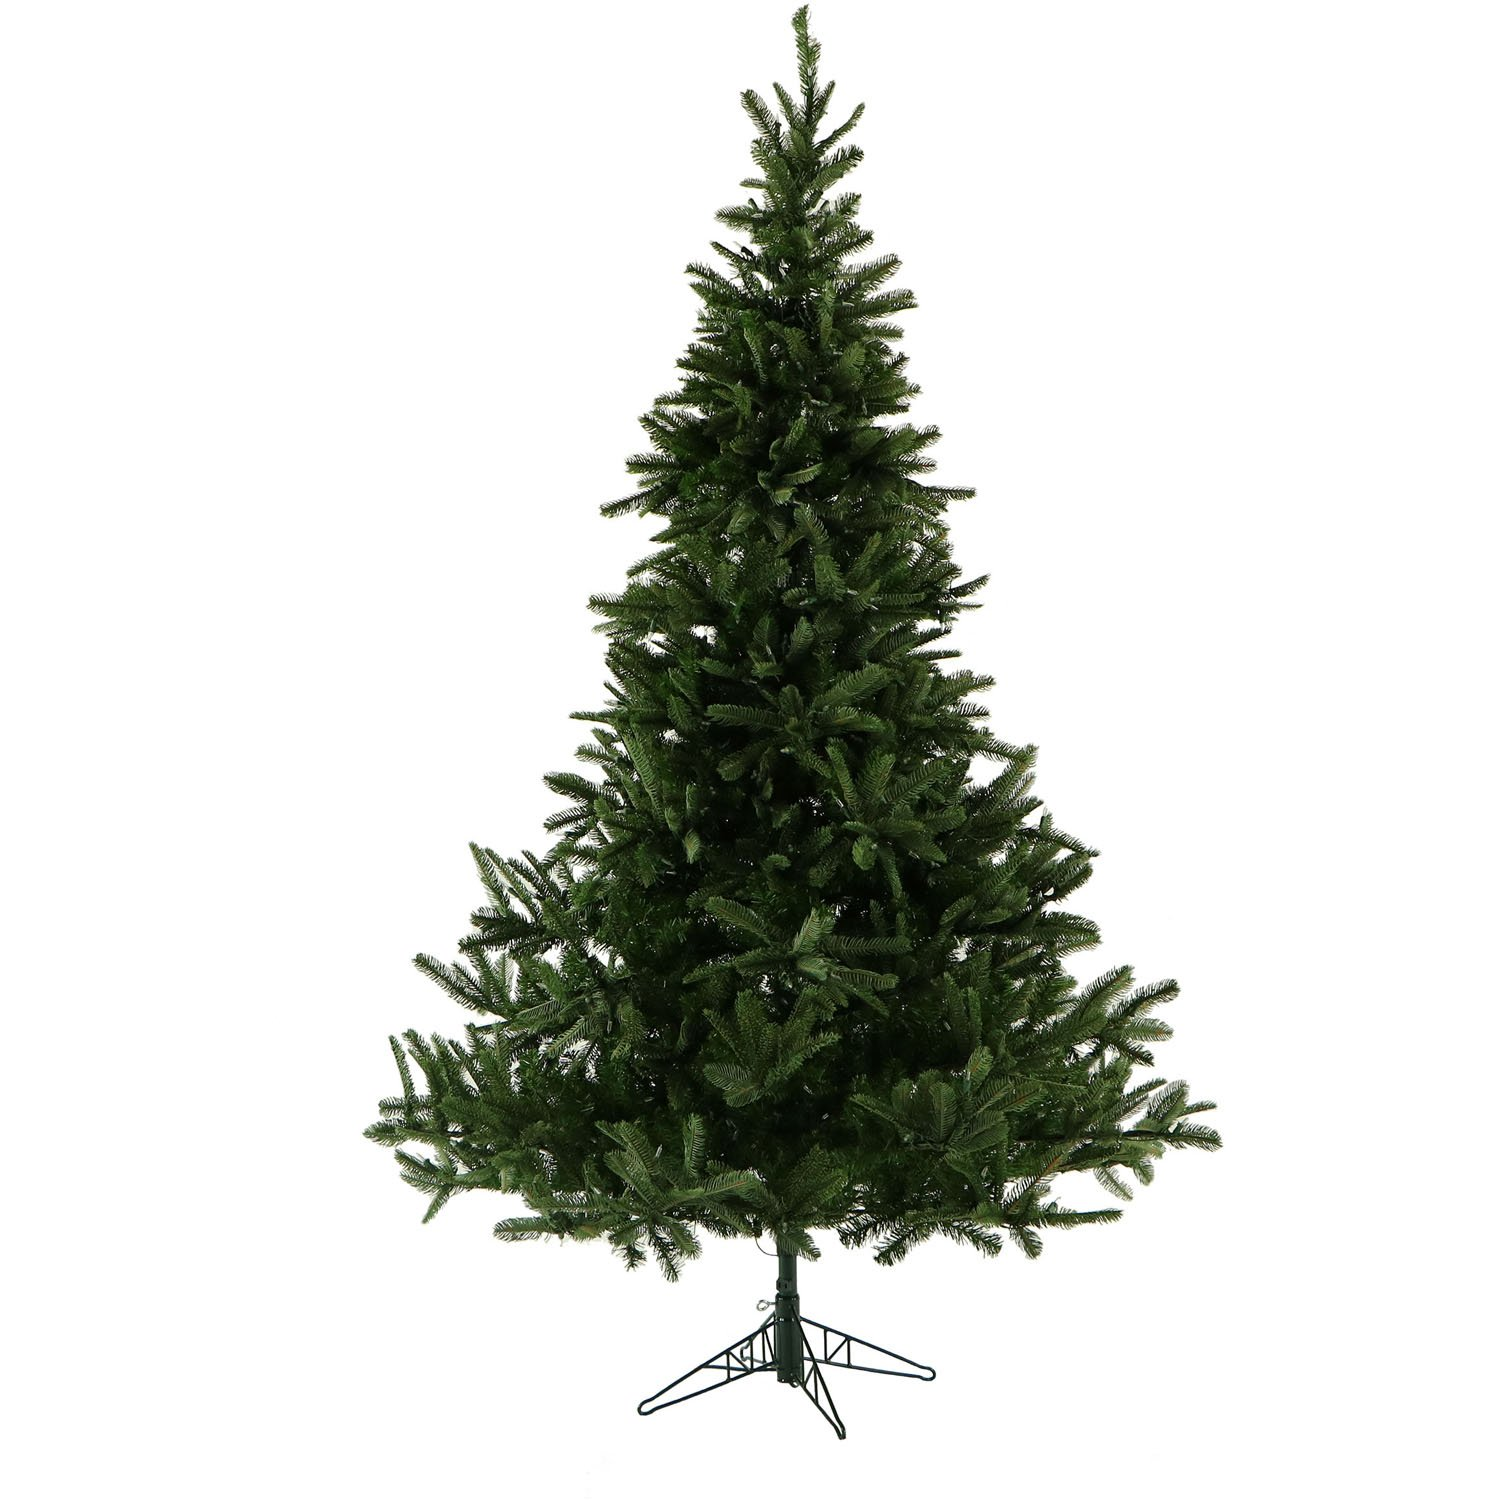 Amazon.com: 7.5 Ft. Noble Fir Christmas Tree with Clear LED String ...